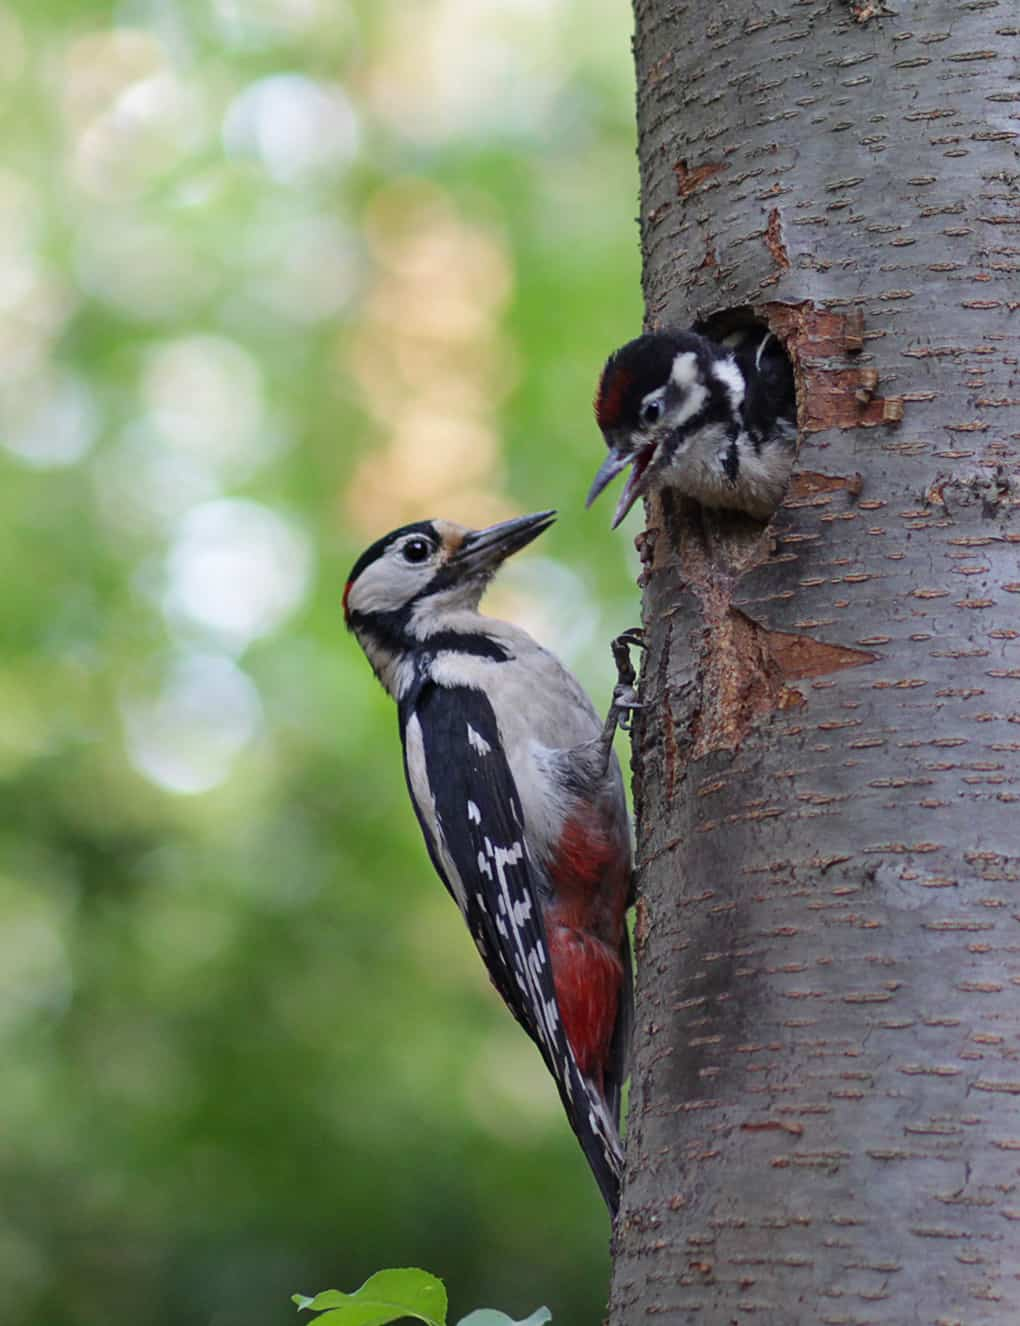 Woodpecker feeds the chick in the nest hollow. Birds